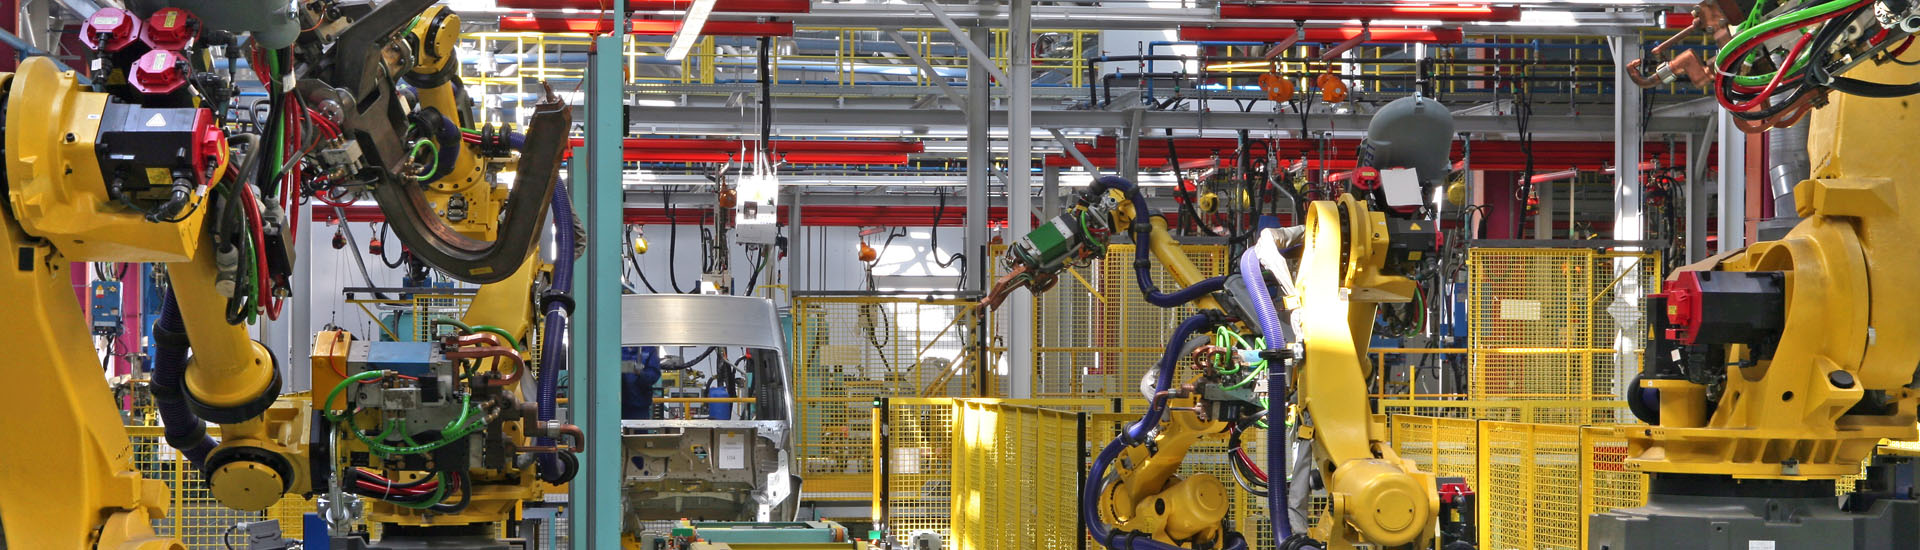 Breakdown Support for Automated Production Systems